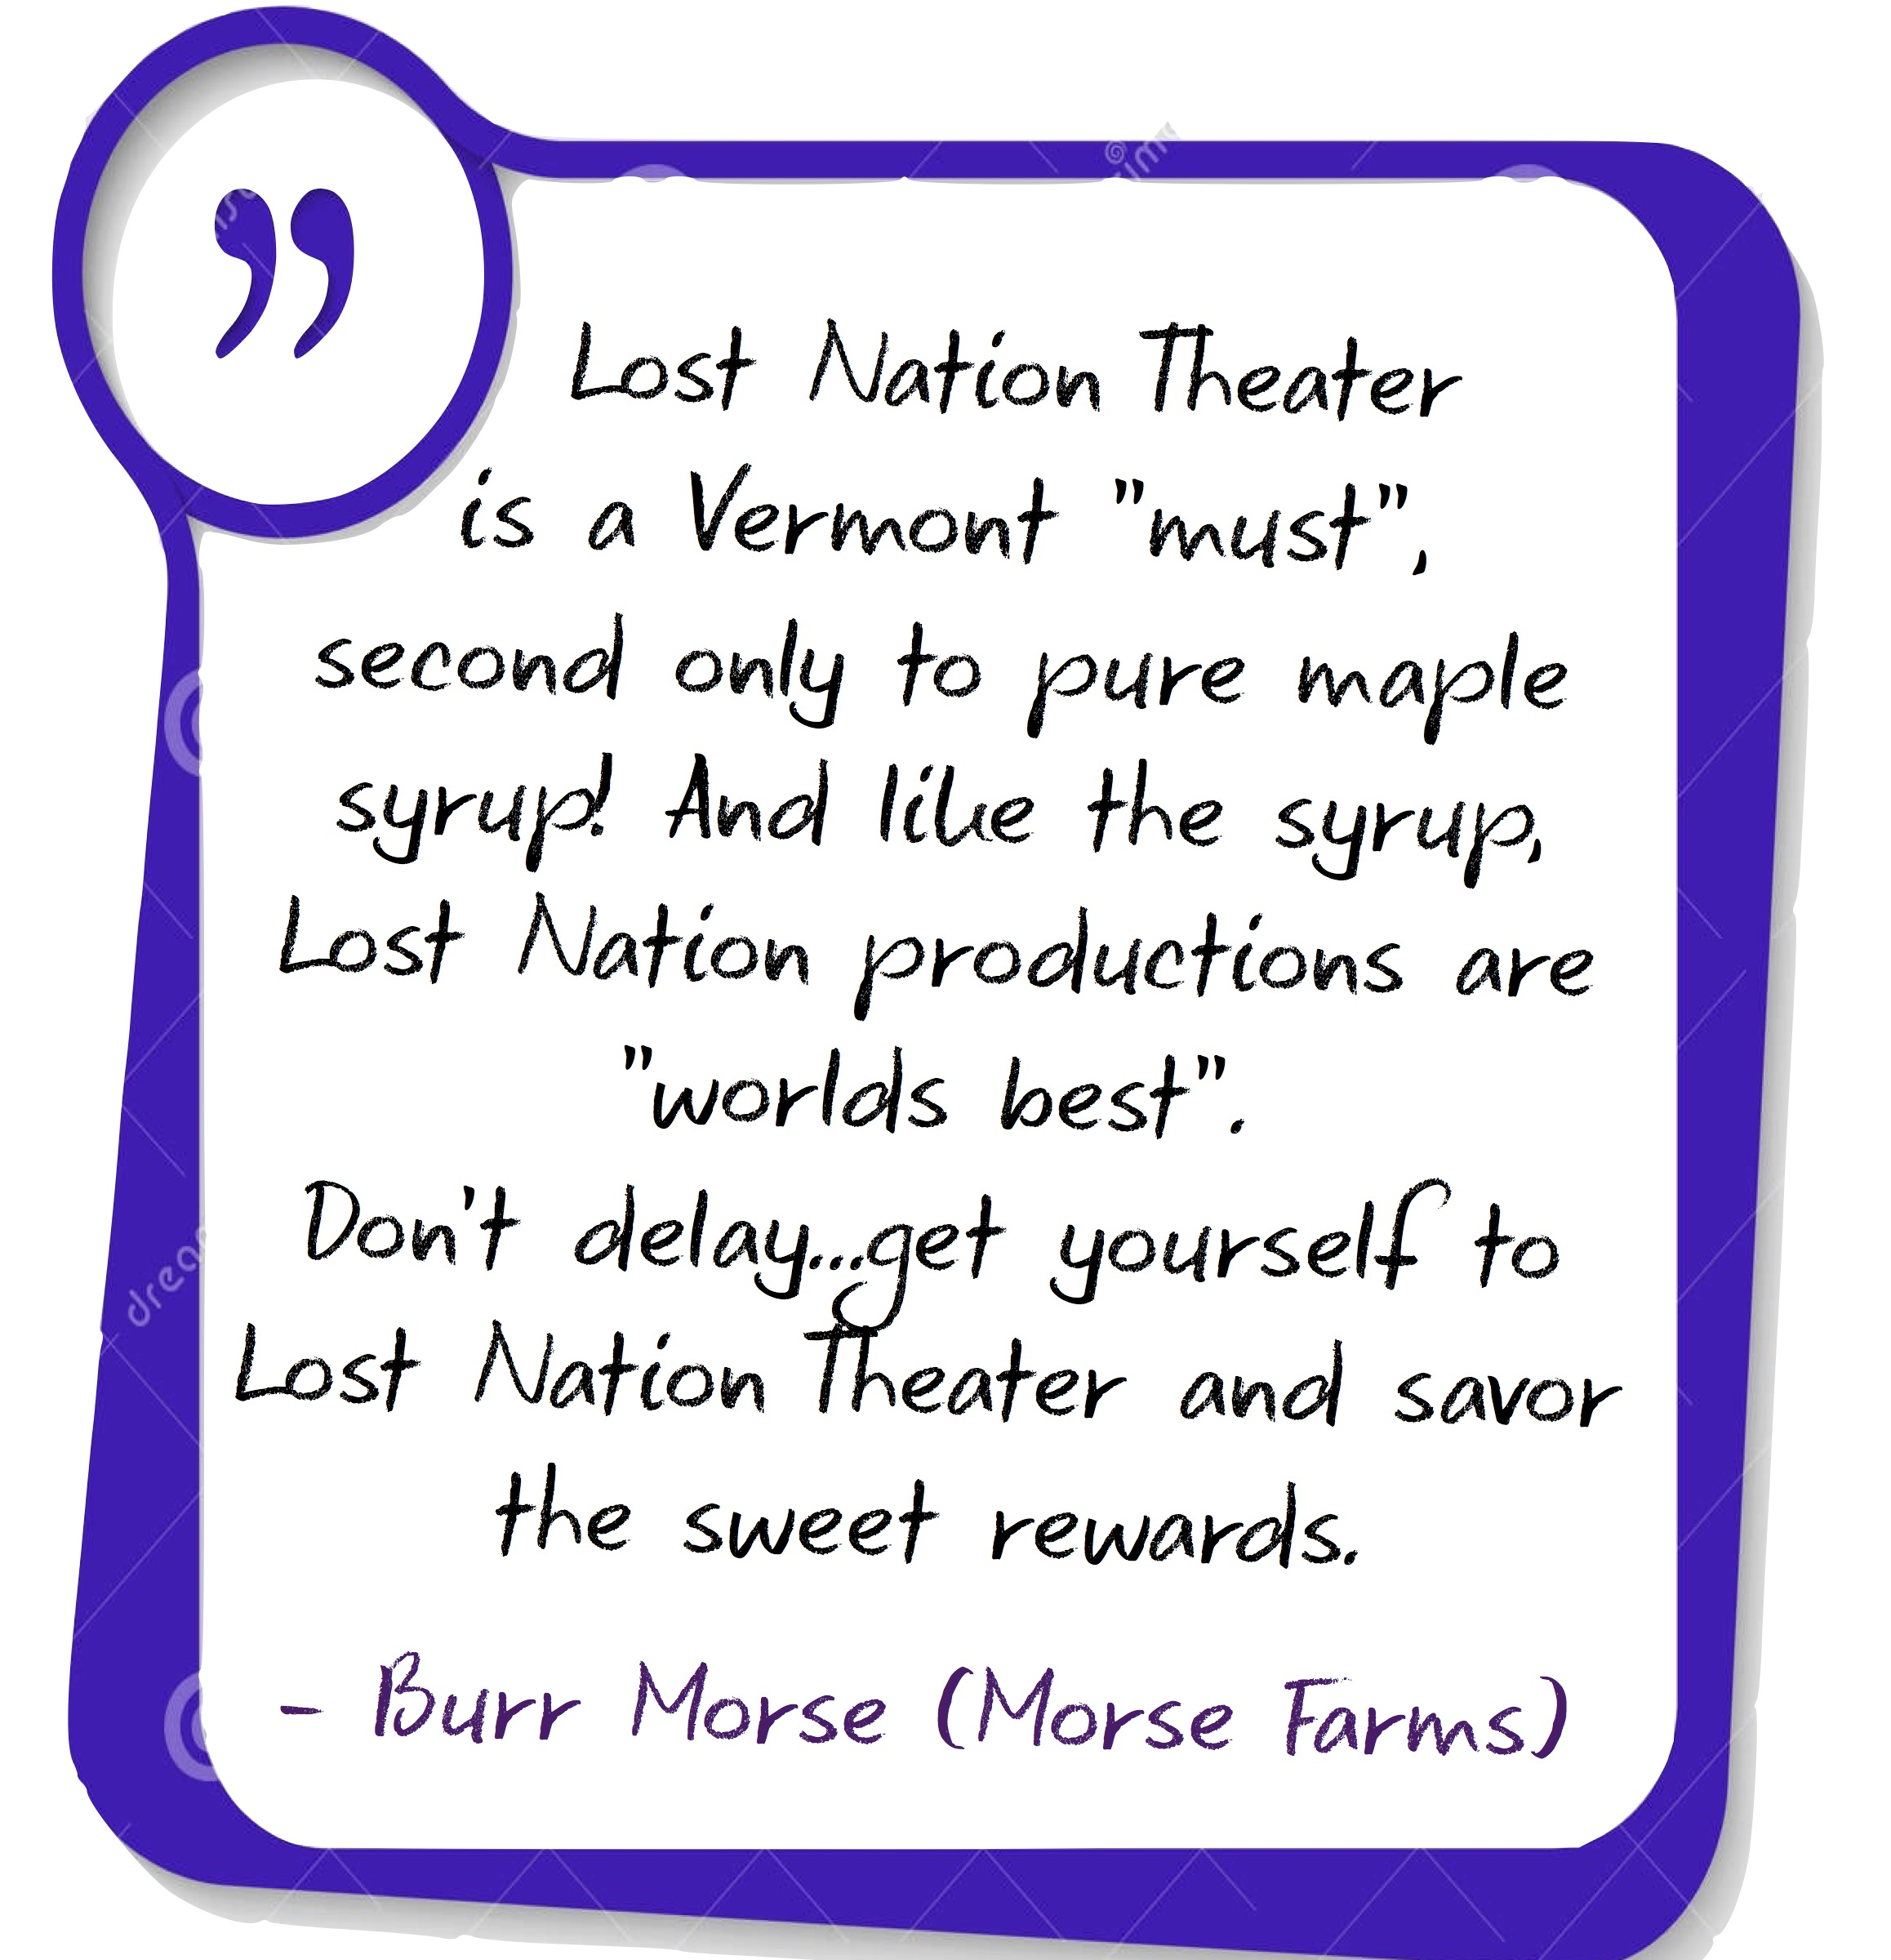 quote from Burr morse